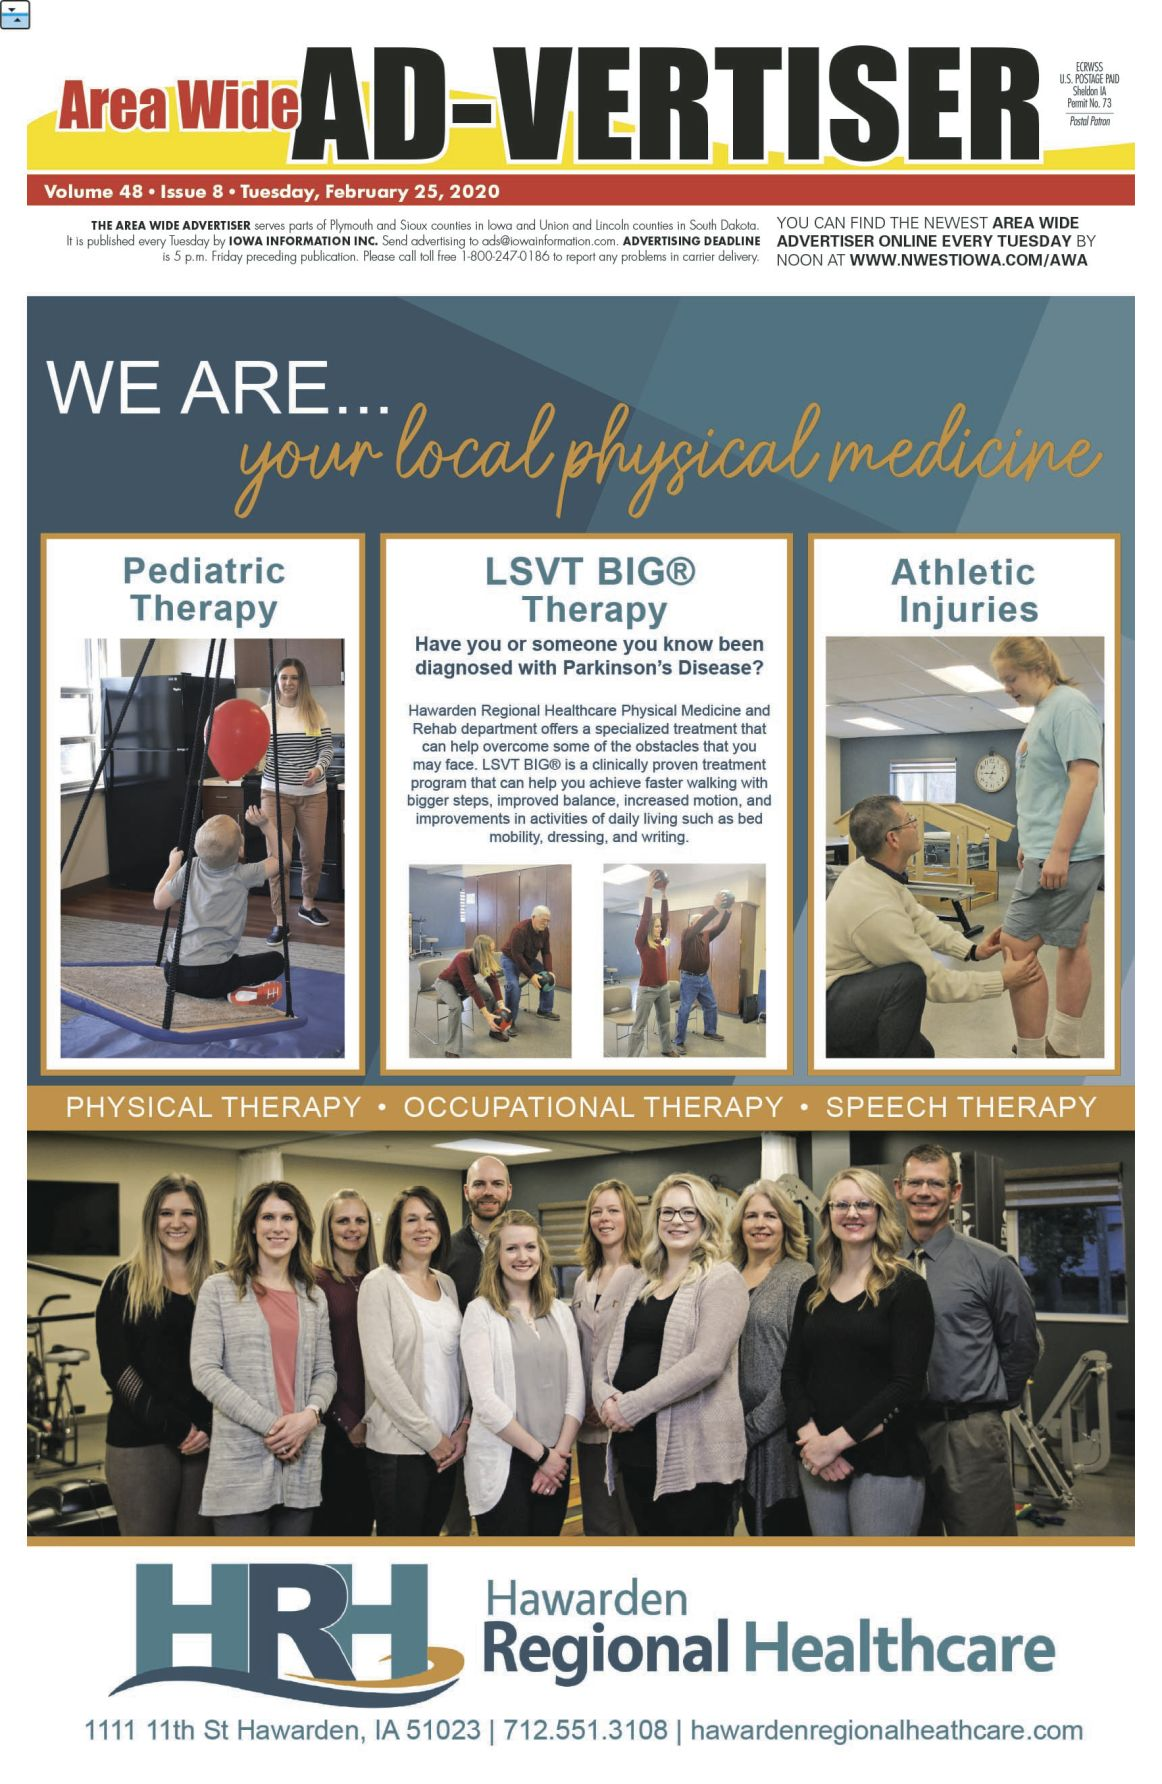 Area Wide Ad-vertiser: February 25, 2020